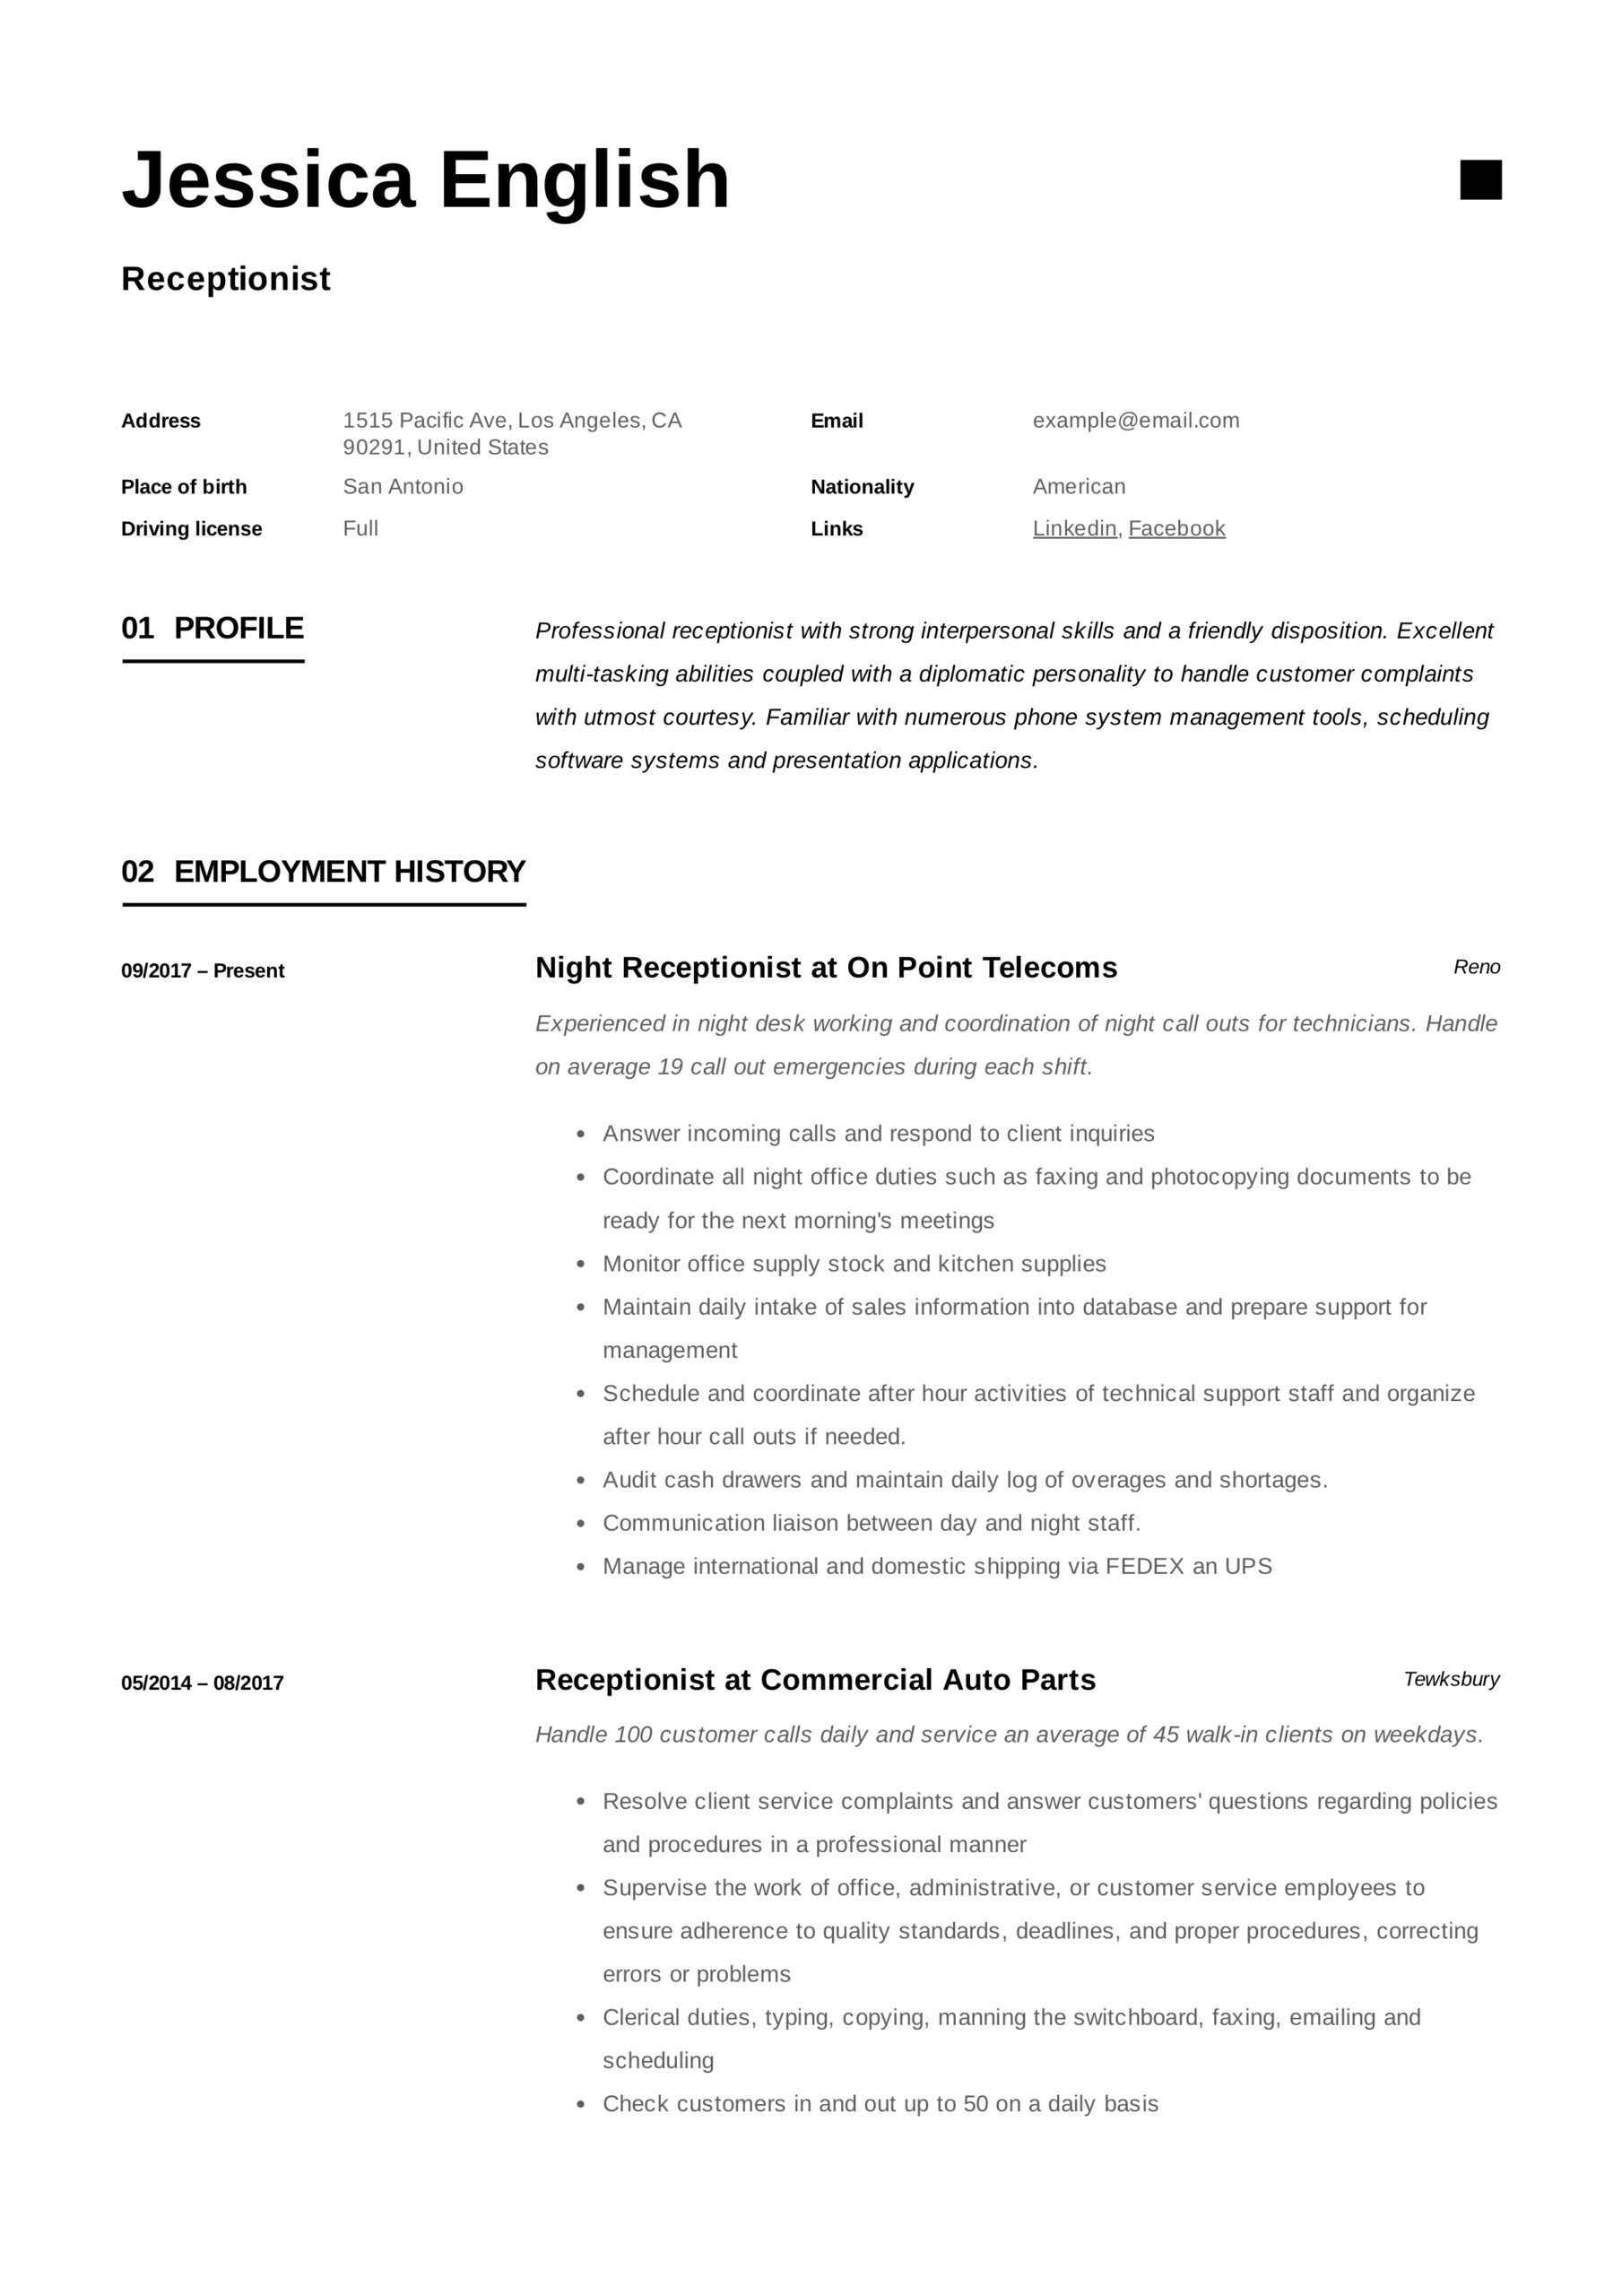 receptionist resume example writing guide samples pdf gym front desk jessica english Resume Gym Front Desk Resume